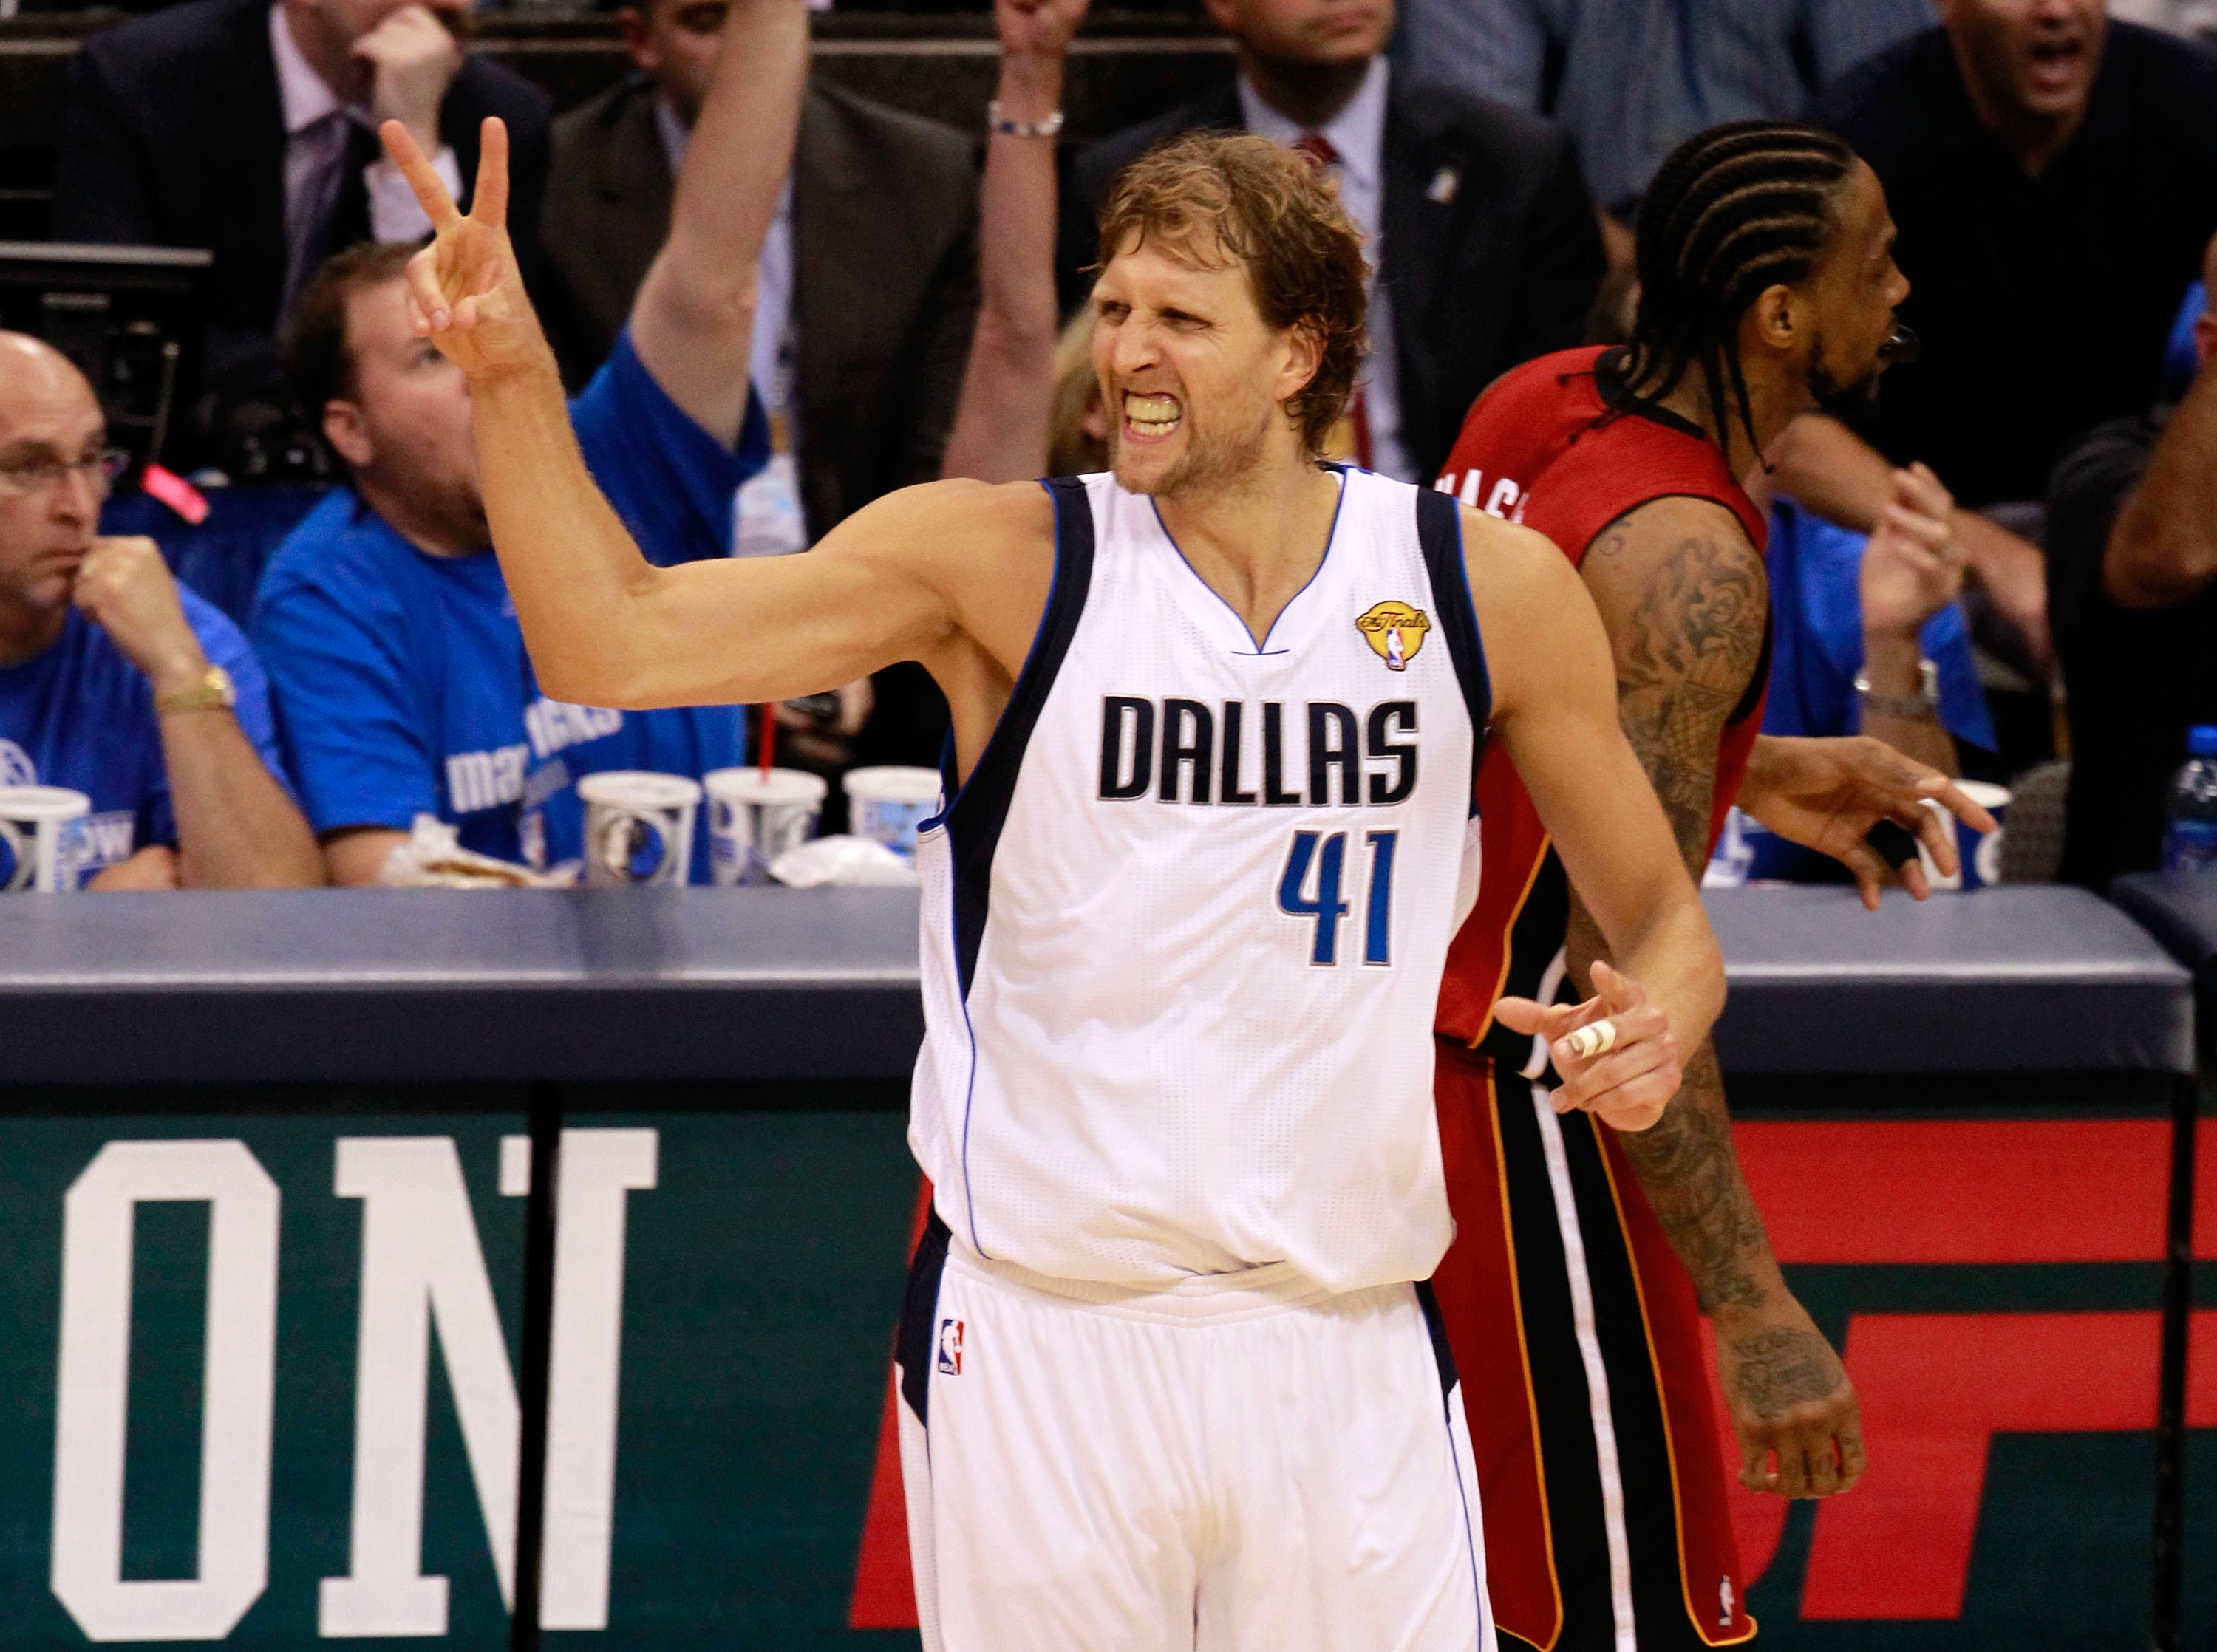 DALLAS, TX - JUNE 05:  Dirk Nowitzki #41 of the Dallas Mavericks reacts in the second half while taking on the Miami Heat in Game Three of the 2011 NBA Finals at American Airlines Center on June 5, 2011 in Dallas, Texas.  NOTE TO USER: User expressly ackn